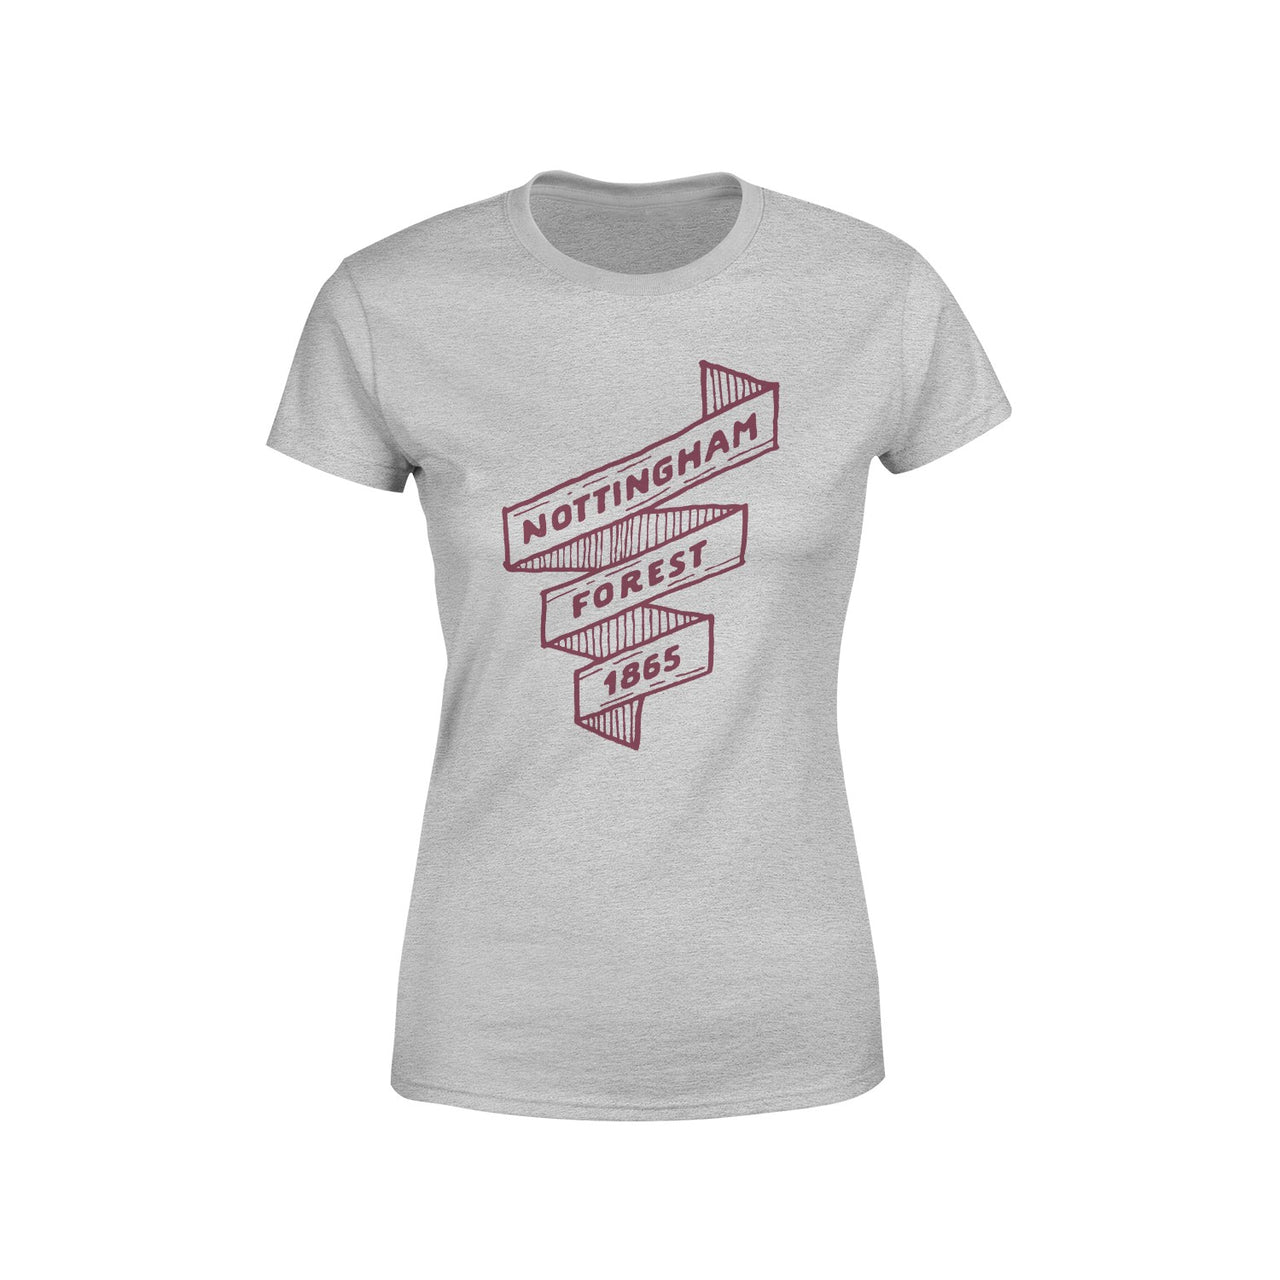 NFFC Womens Grey Scroll T-Shirt